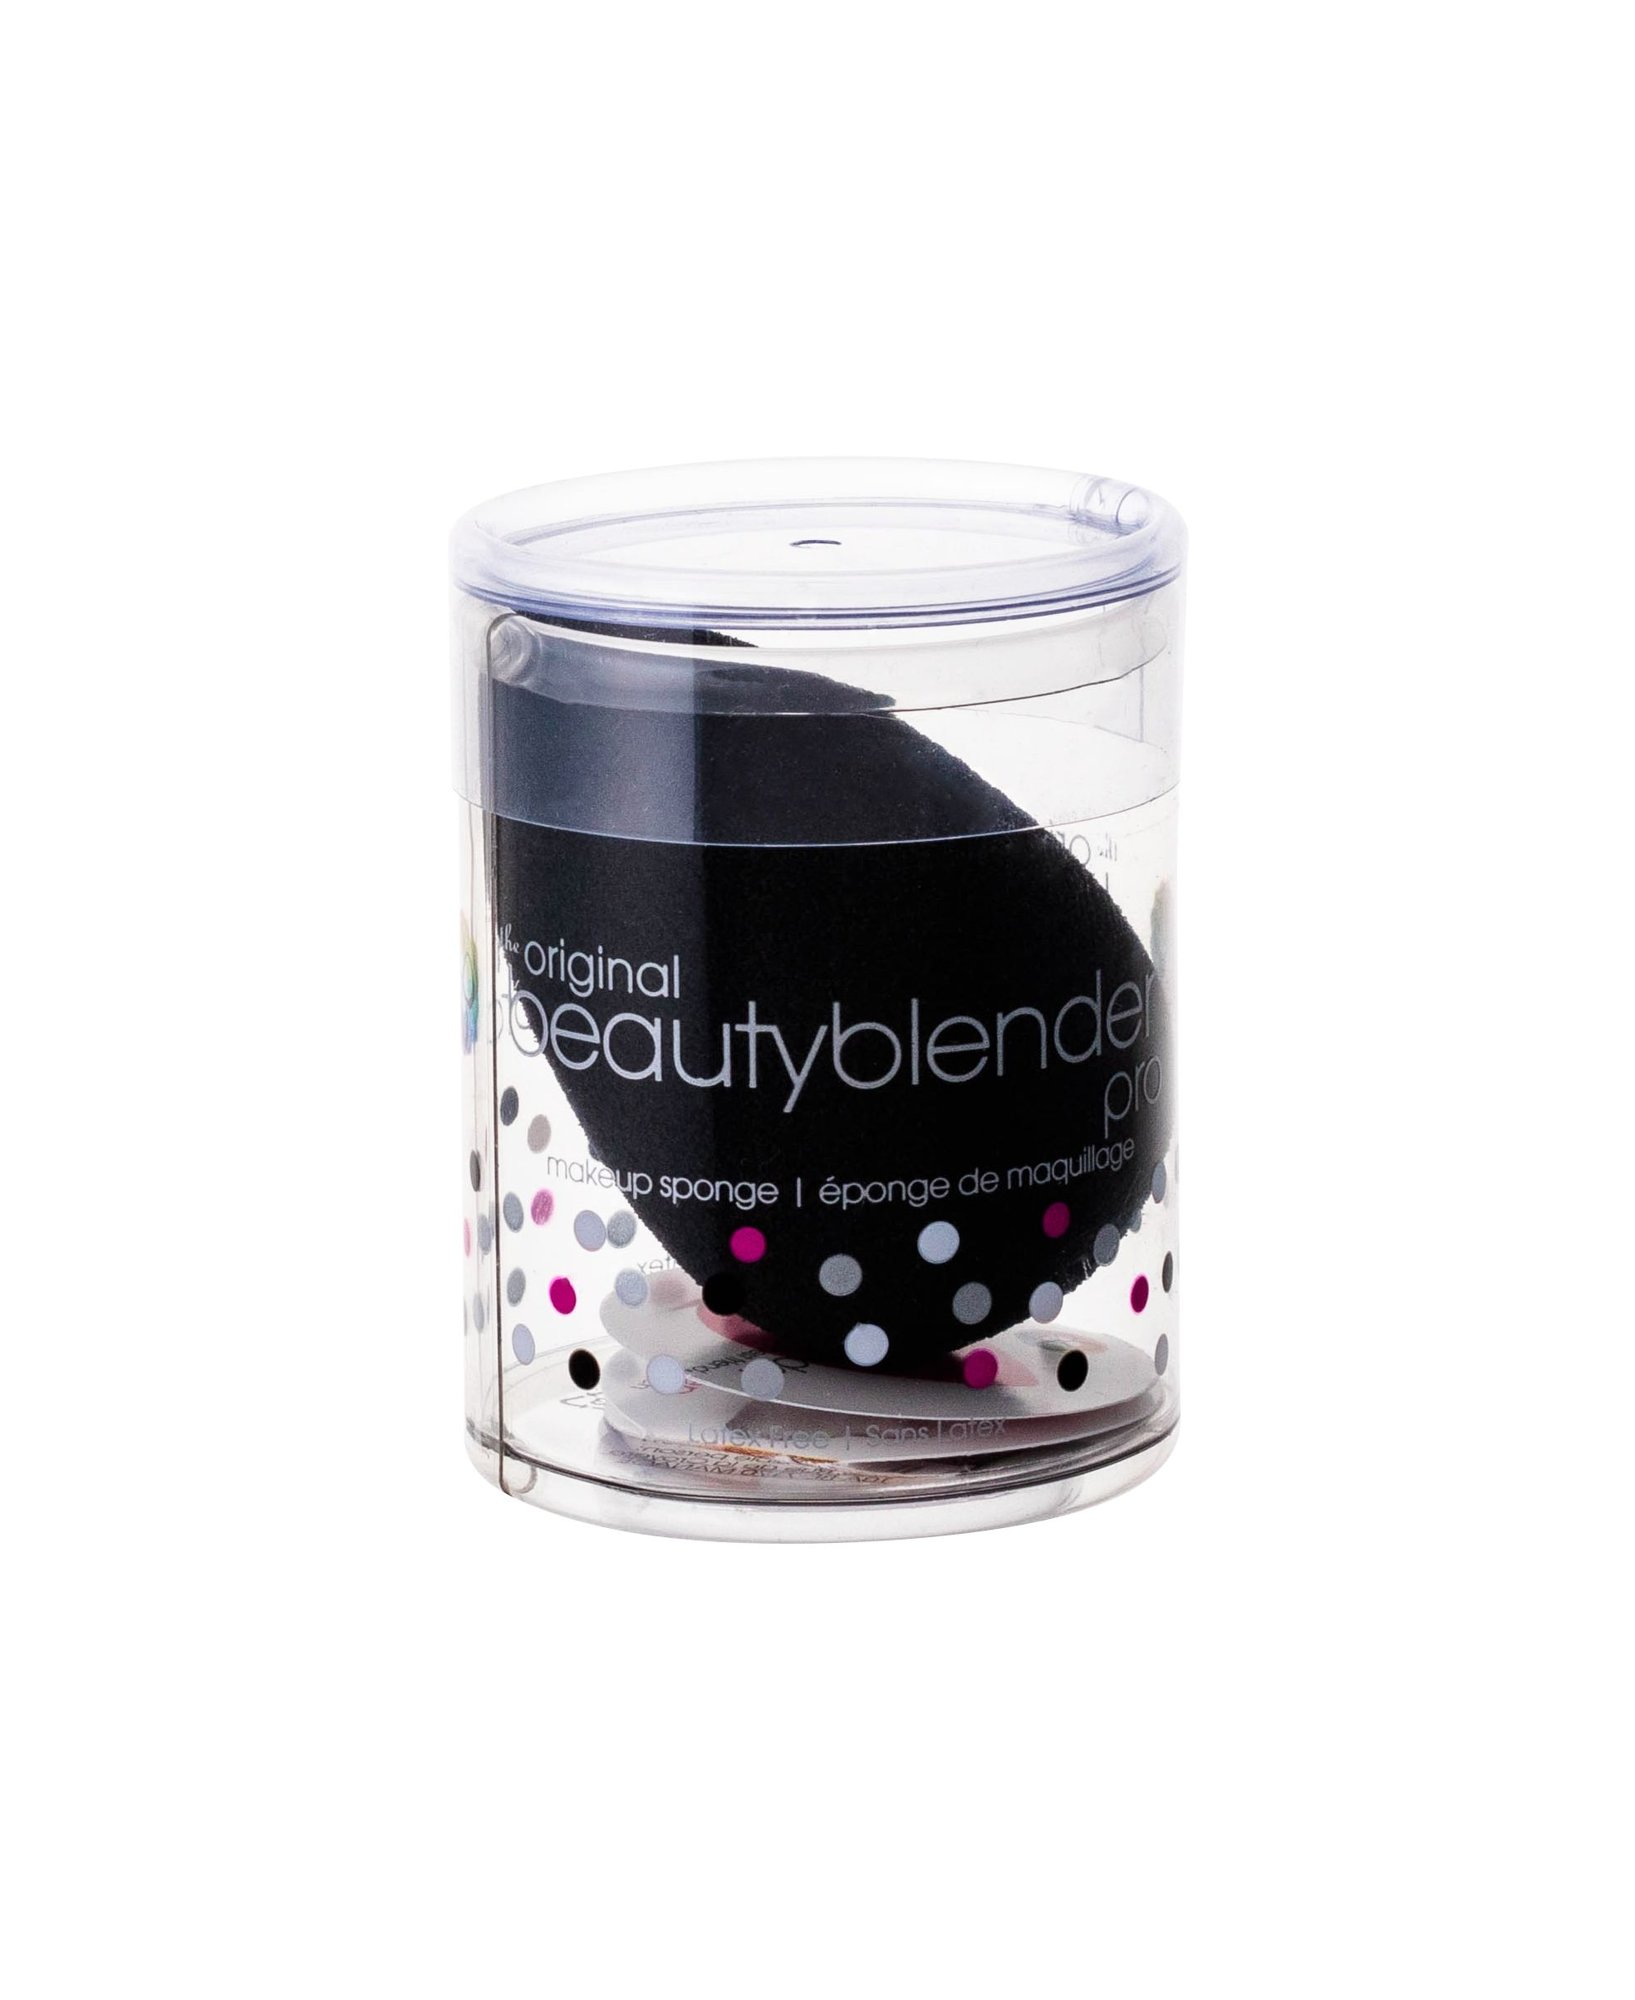 beautyblender the original Applicator 1ml Black